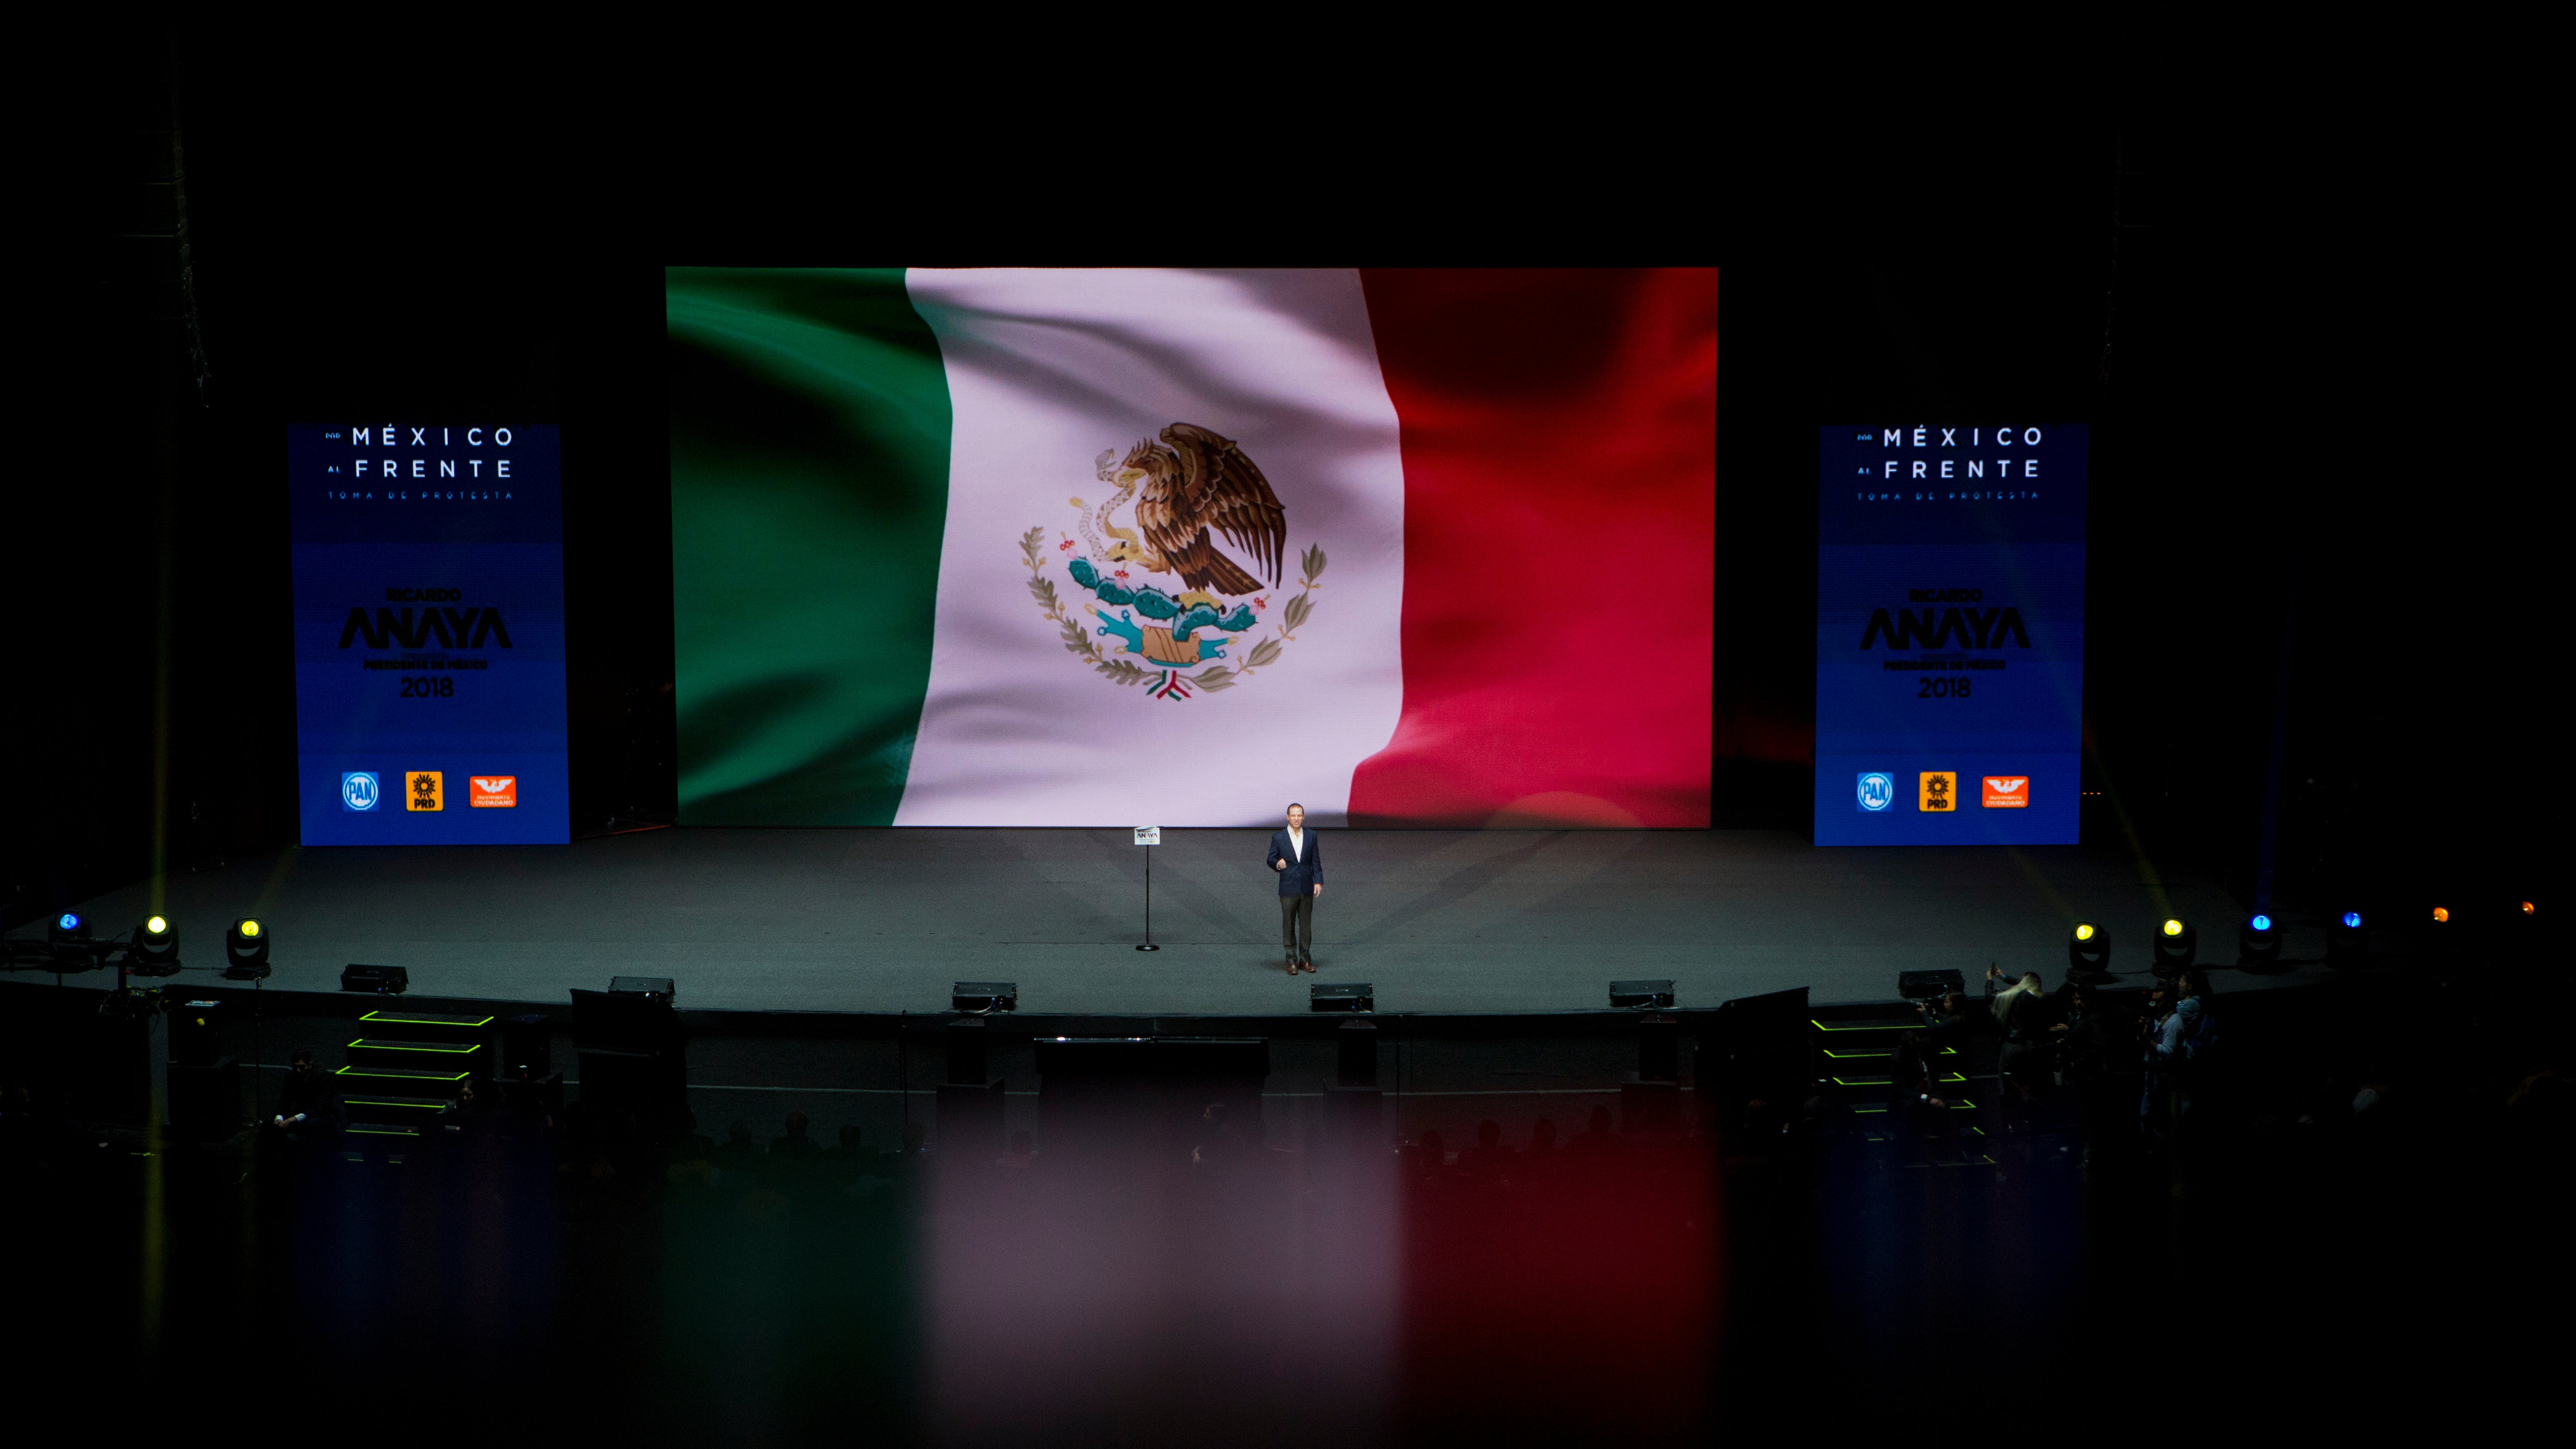 Facebook Is Running Ads In Mexican Newspapers Warning About Fake News